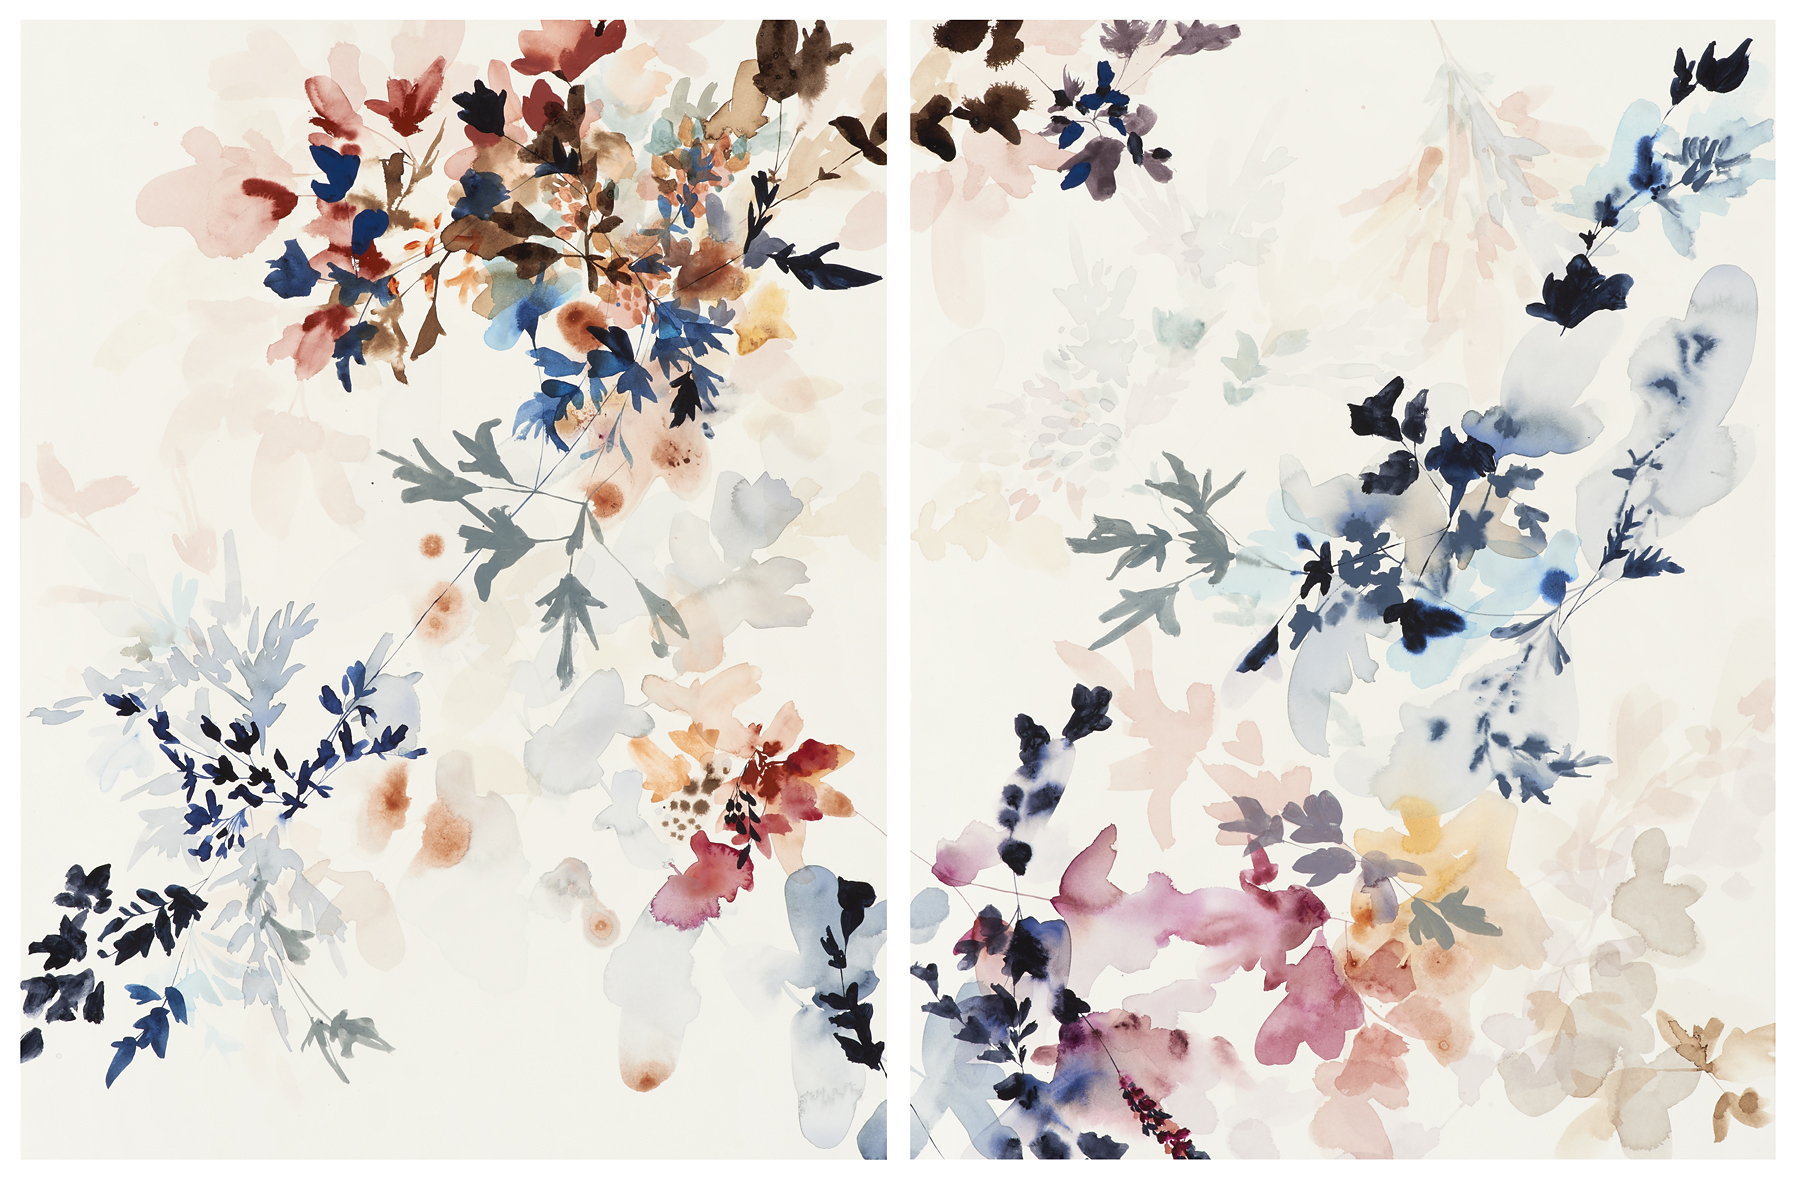 "Wildflower Study-11-1-A&B, 2017, mixed media on paper, 29 x 44"" (29 x 22"" each)"